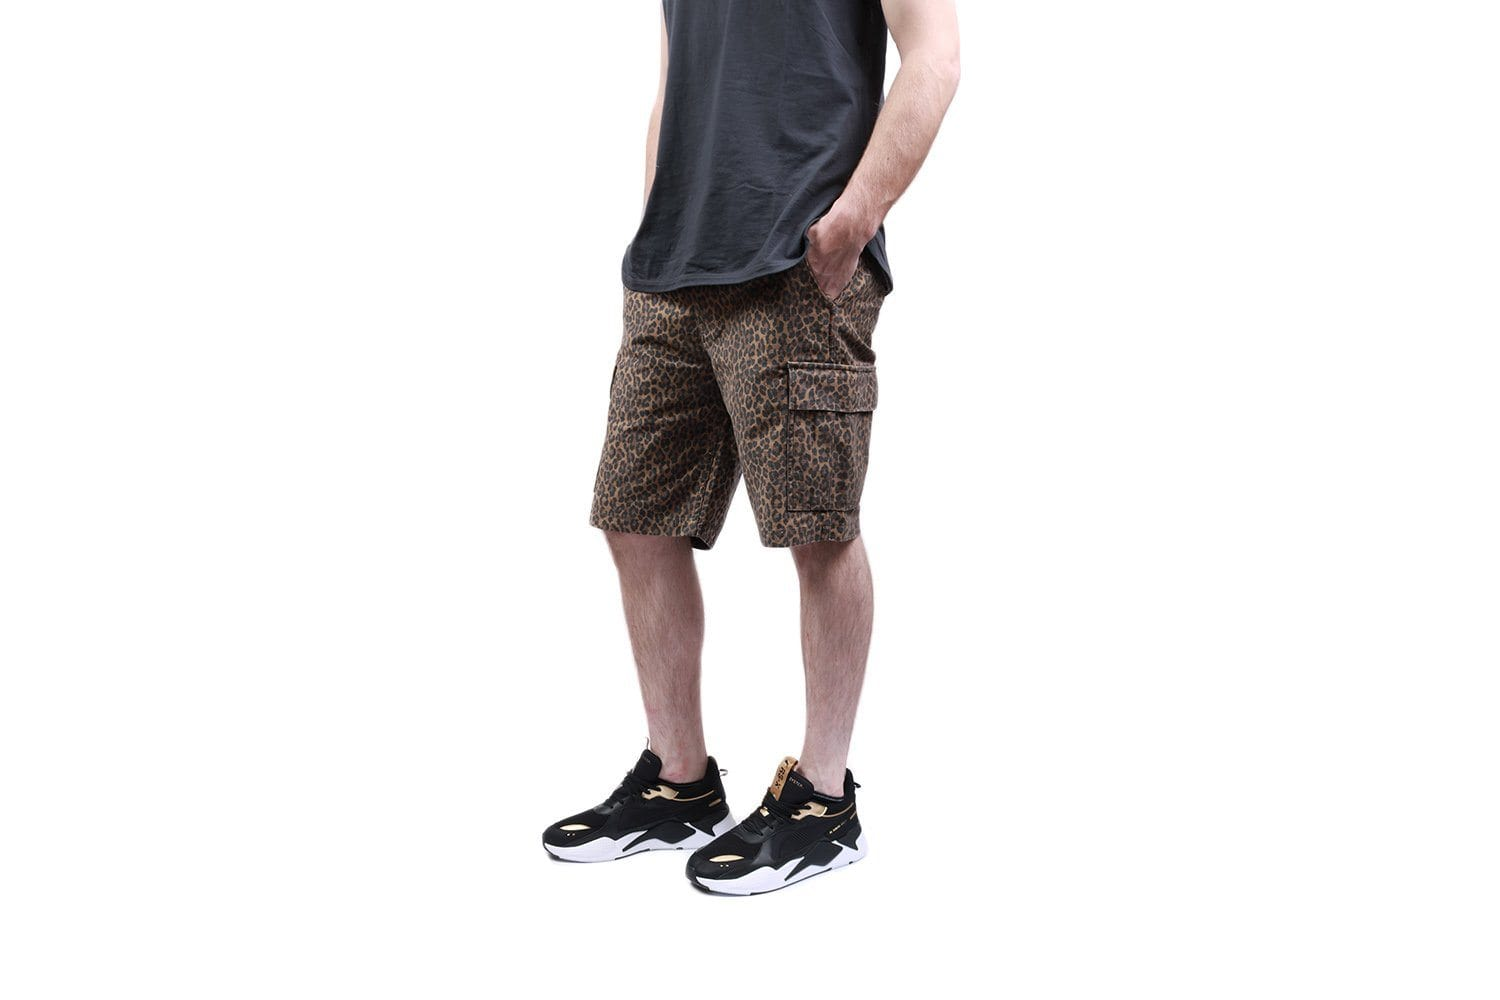 HI-BALL CARGO SHORTS MENS SOFTGOODS LEVIS